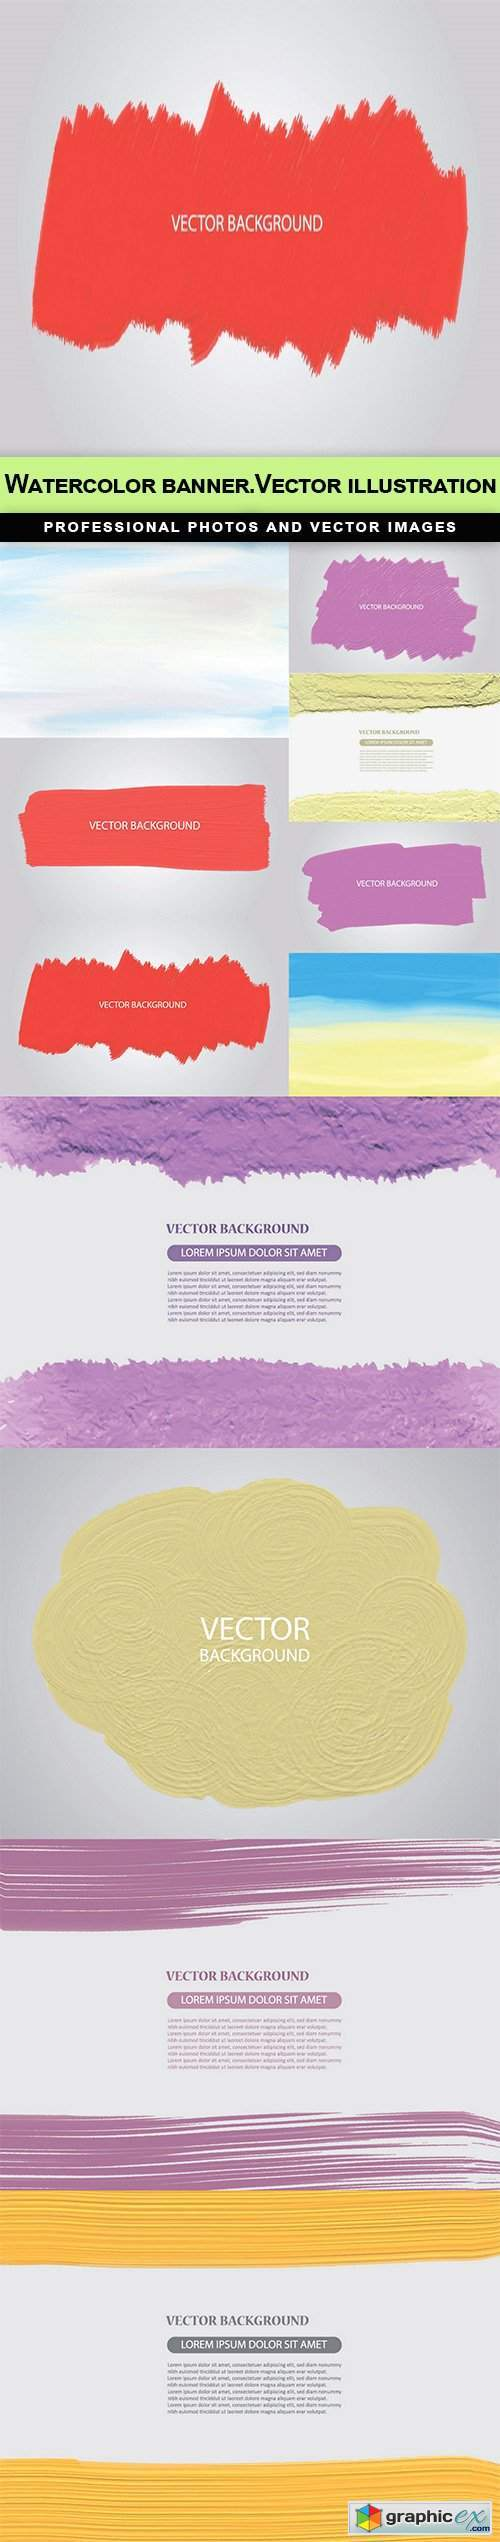 Watercolor banner.Vector illustration - 22 EPS